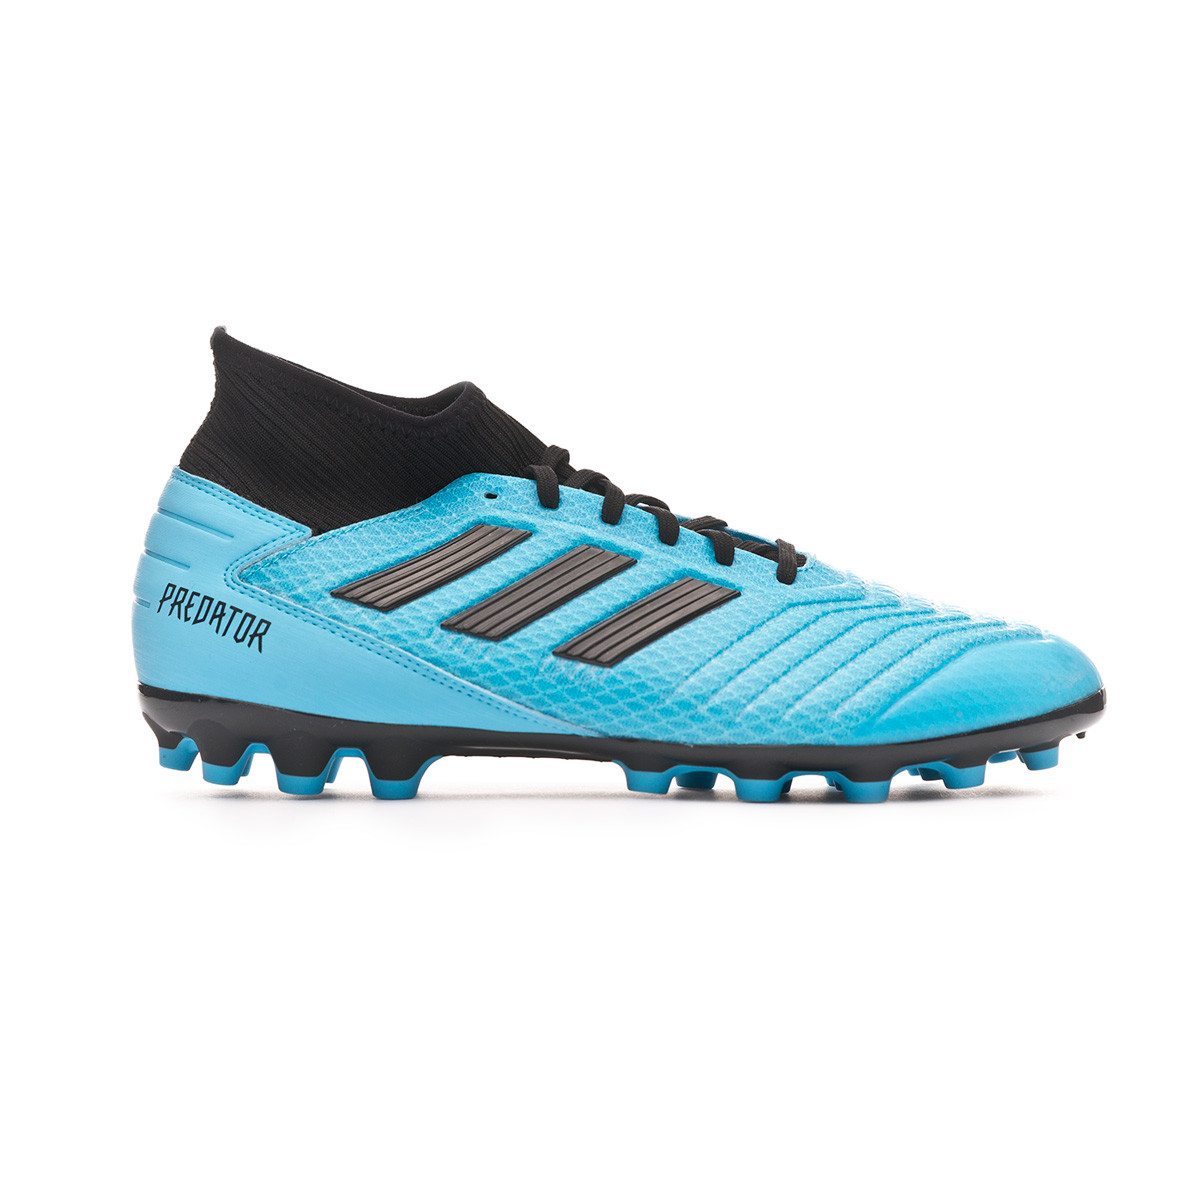 Cyan Black Solar Predator Core Ag 3 Bright Yellow Bota 19 rtdshQ